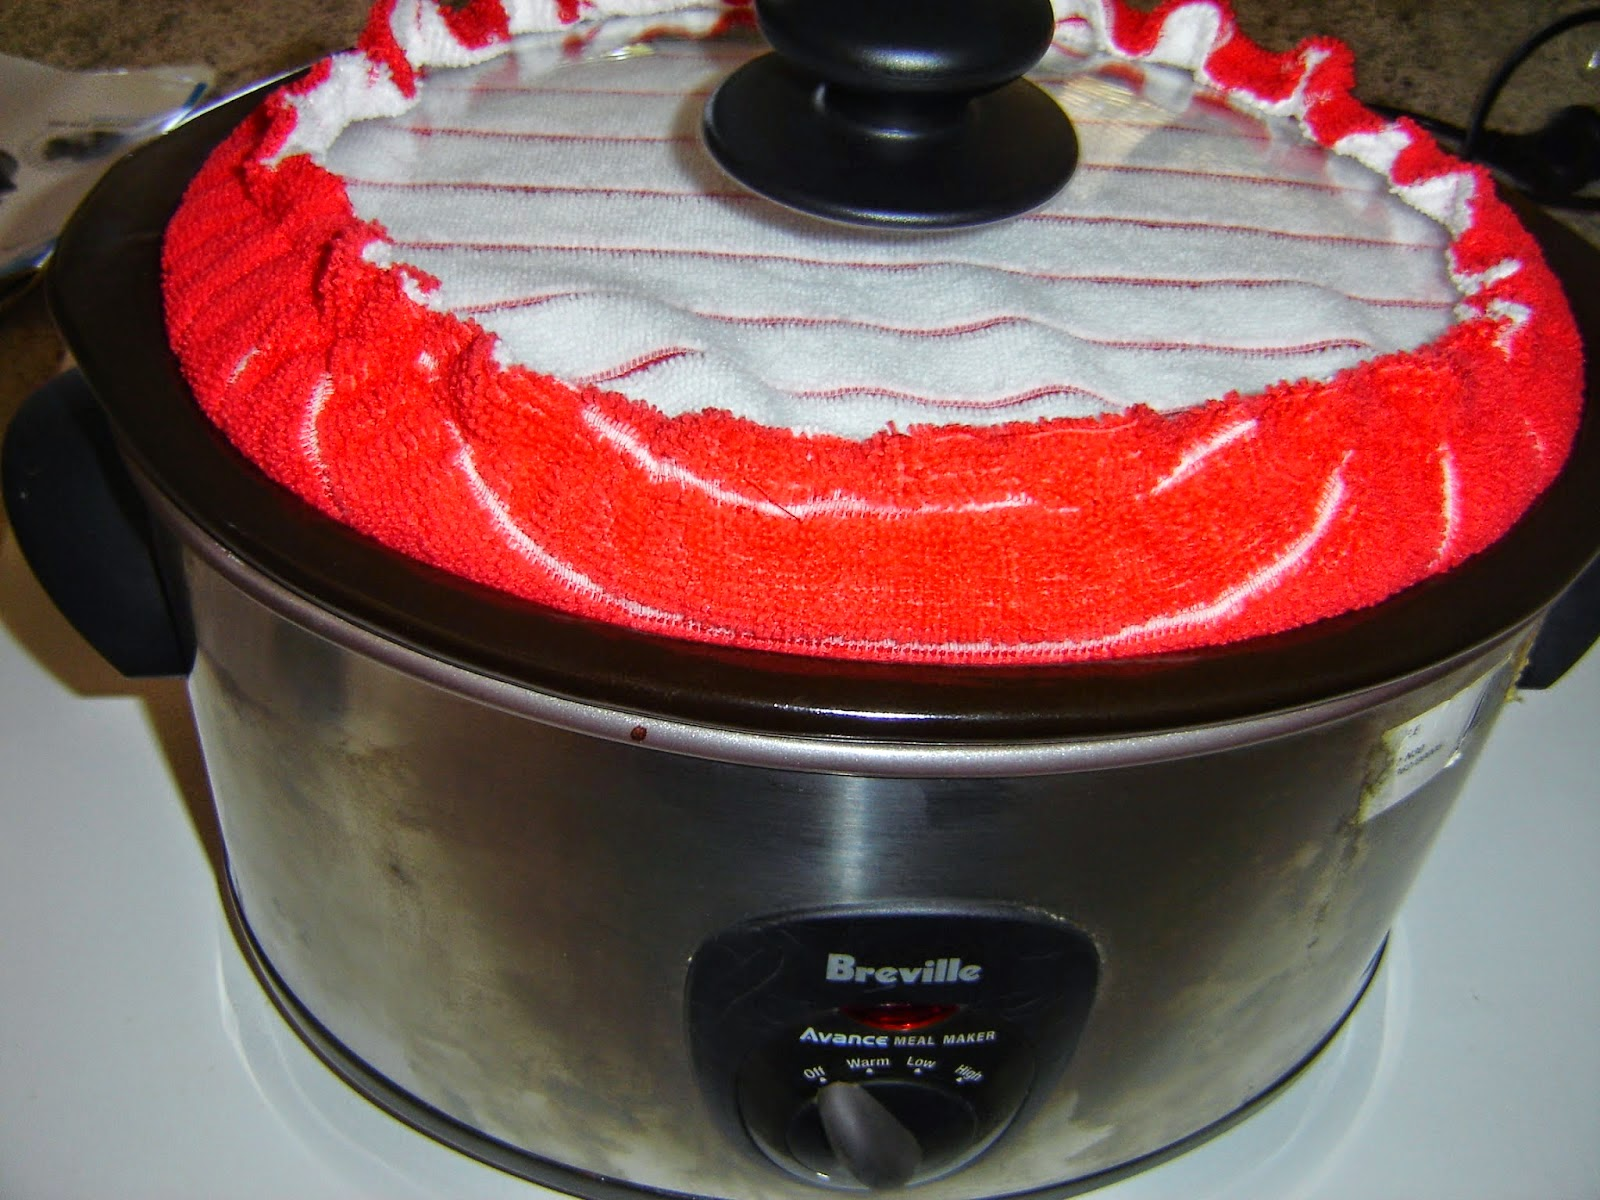 http://nannynotes2u.blogspot.com.au/2014/11/tutorial-slow-cooker-lid-cover.html